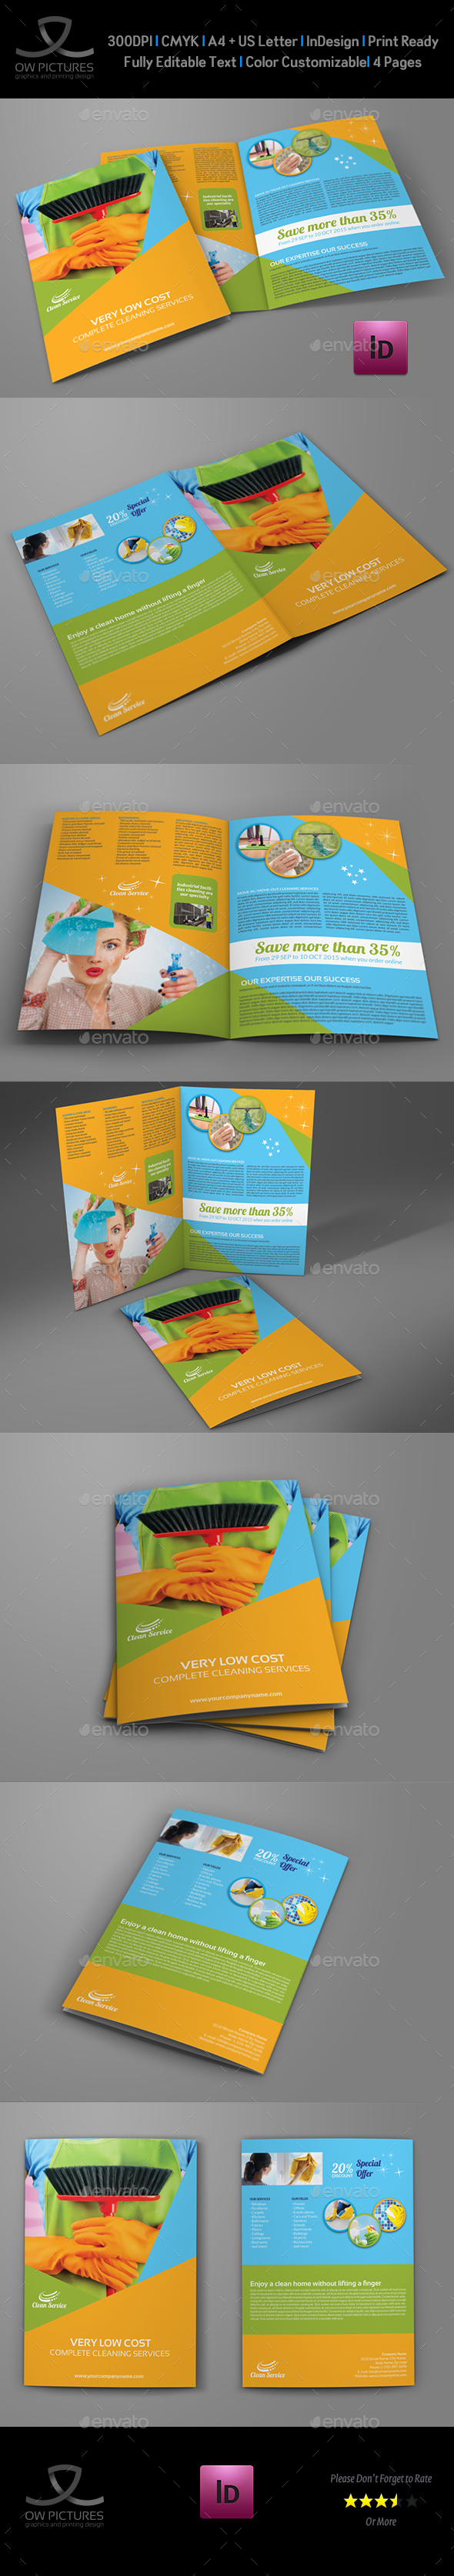 Cleaning Services Bi-Fold Brochure Vol.2 - Corporate Brochures